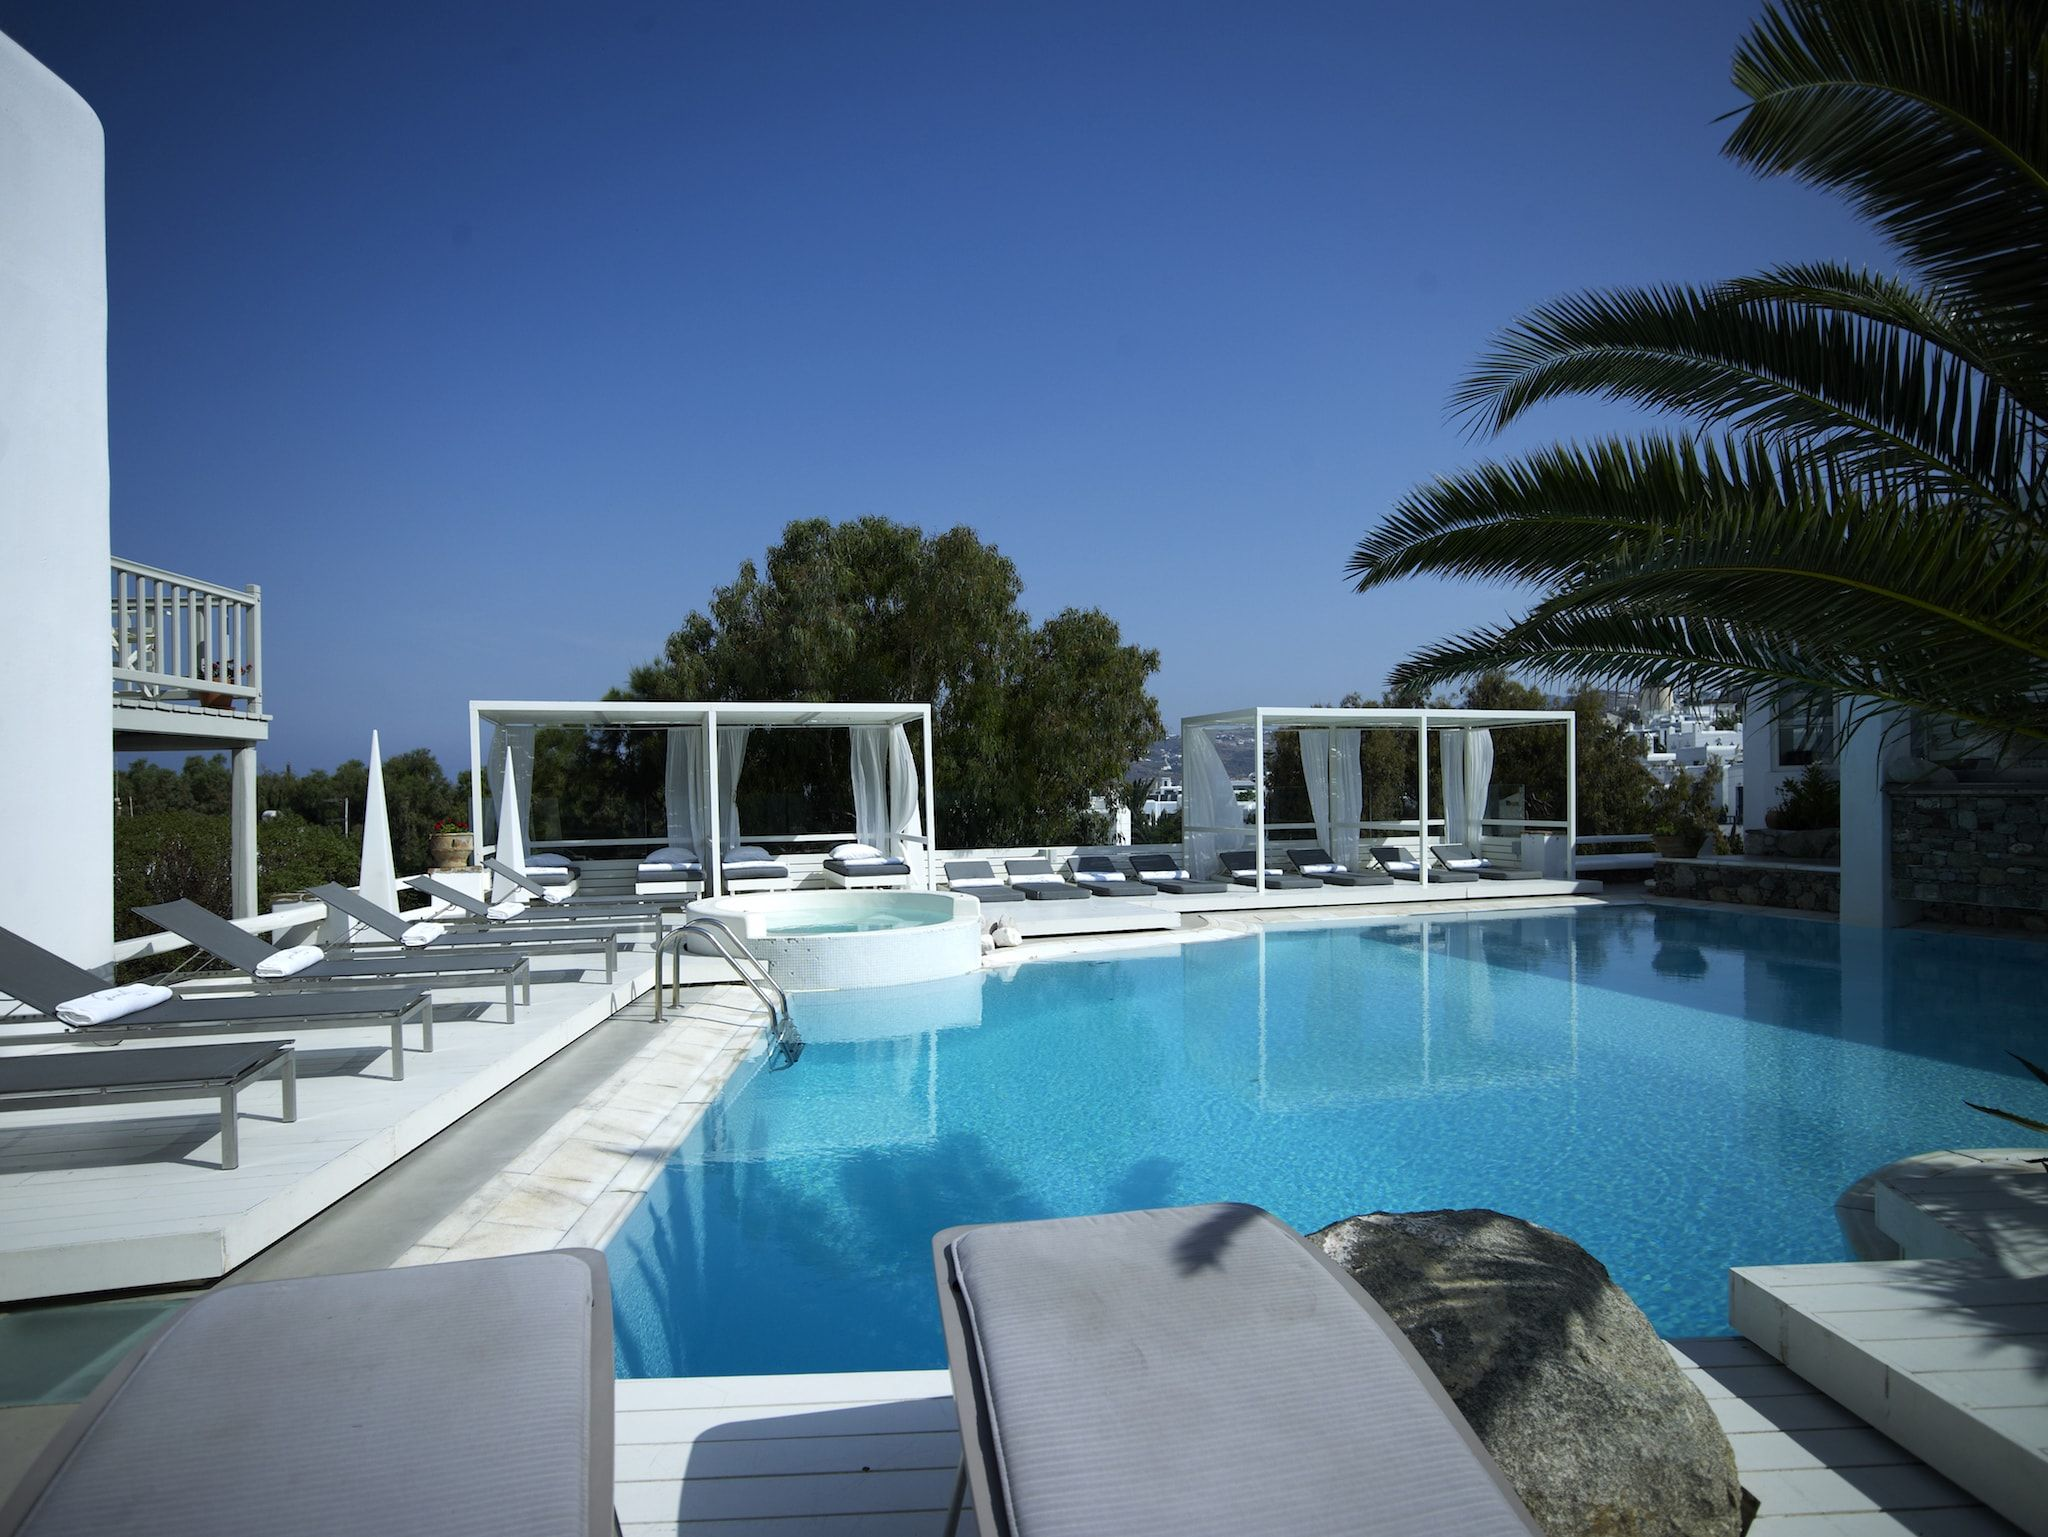 did you know that during the winter season all our swimming pools